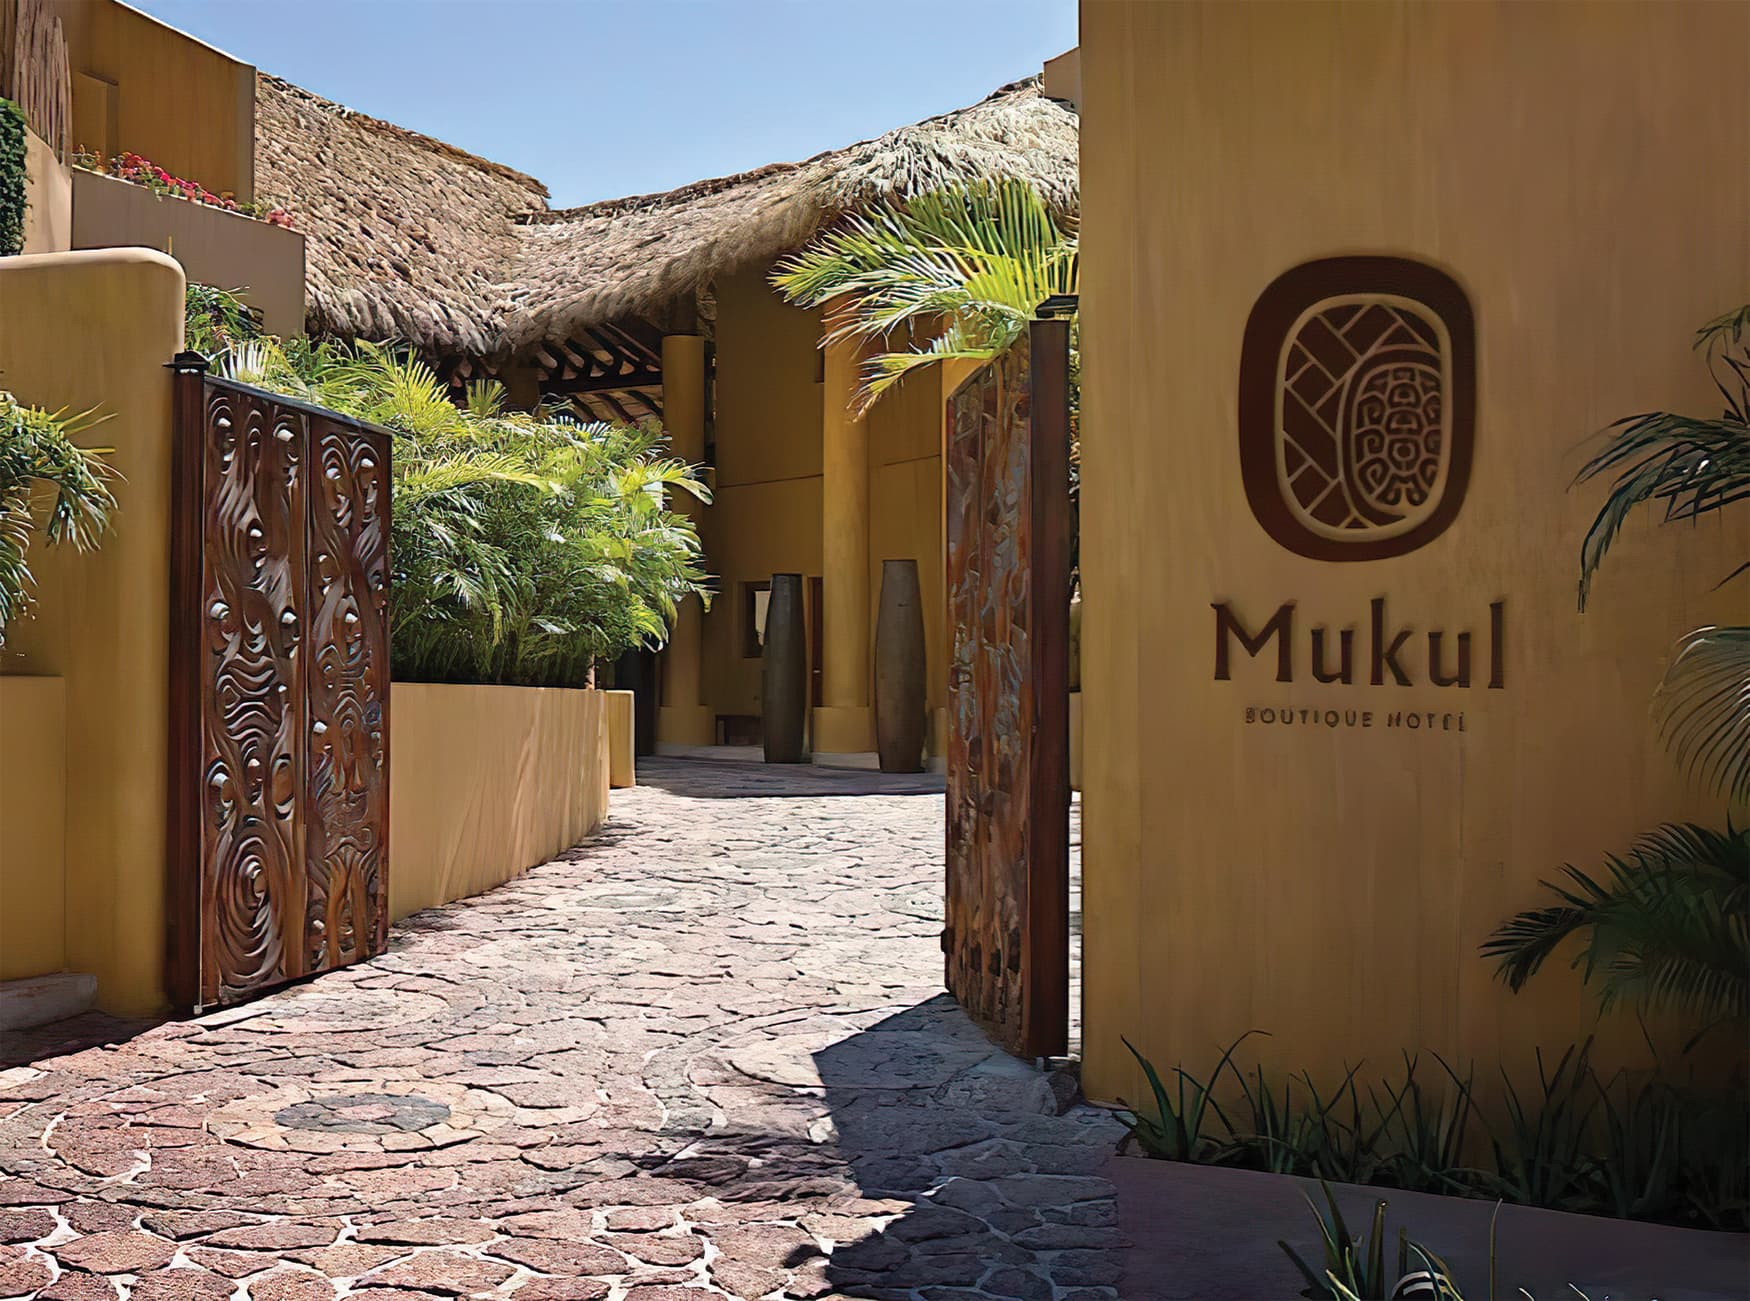 Mukul, a resort in Nicaragua, hired RSM Design to develop their Branding & Logo Design. Hospitality Signage Identity.